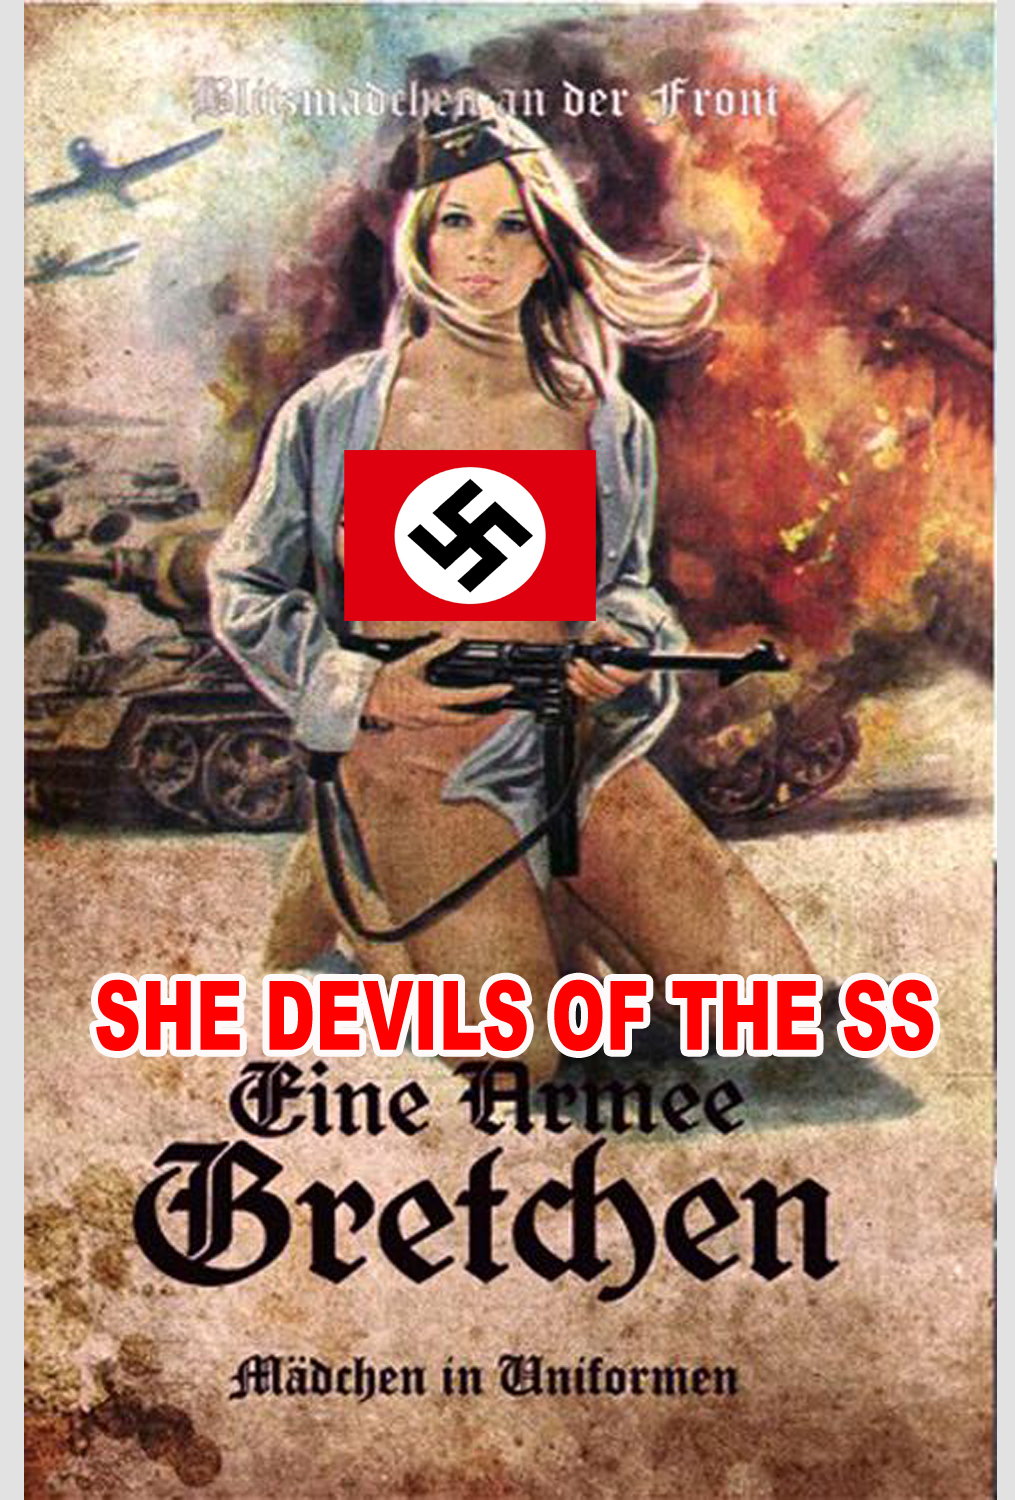 She devils of the ss (1973)